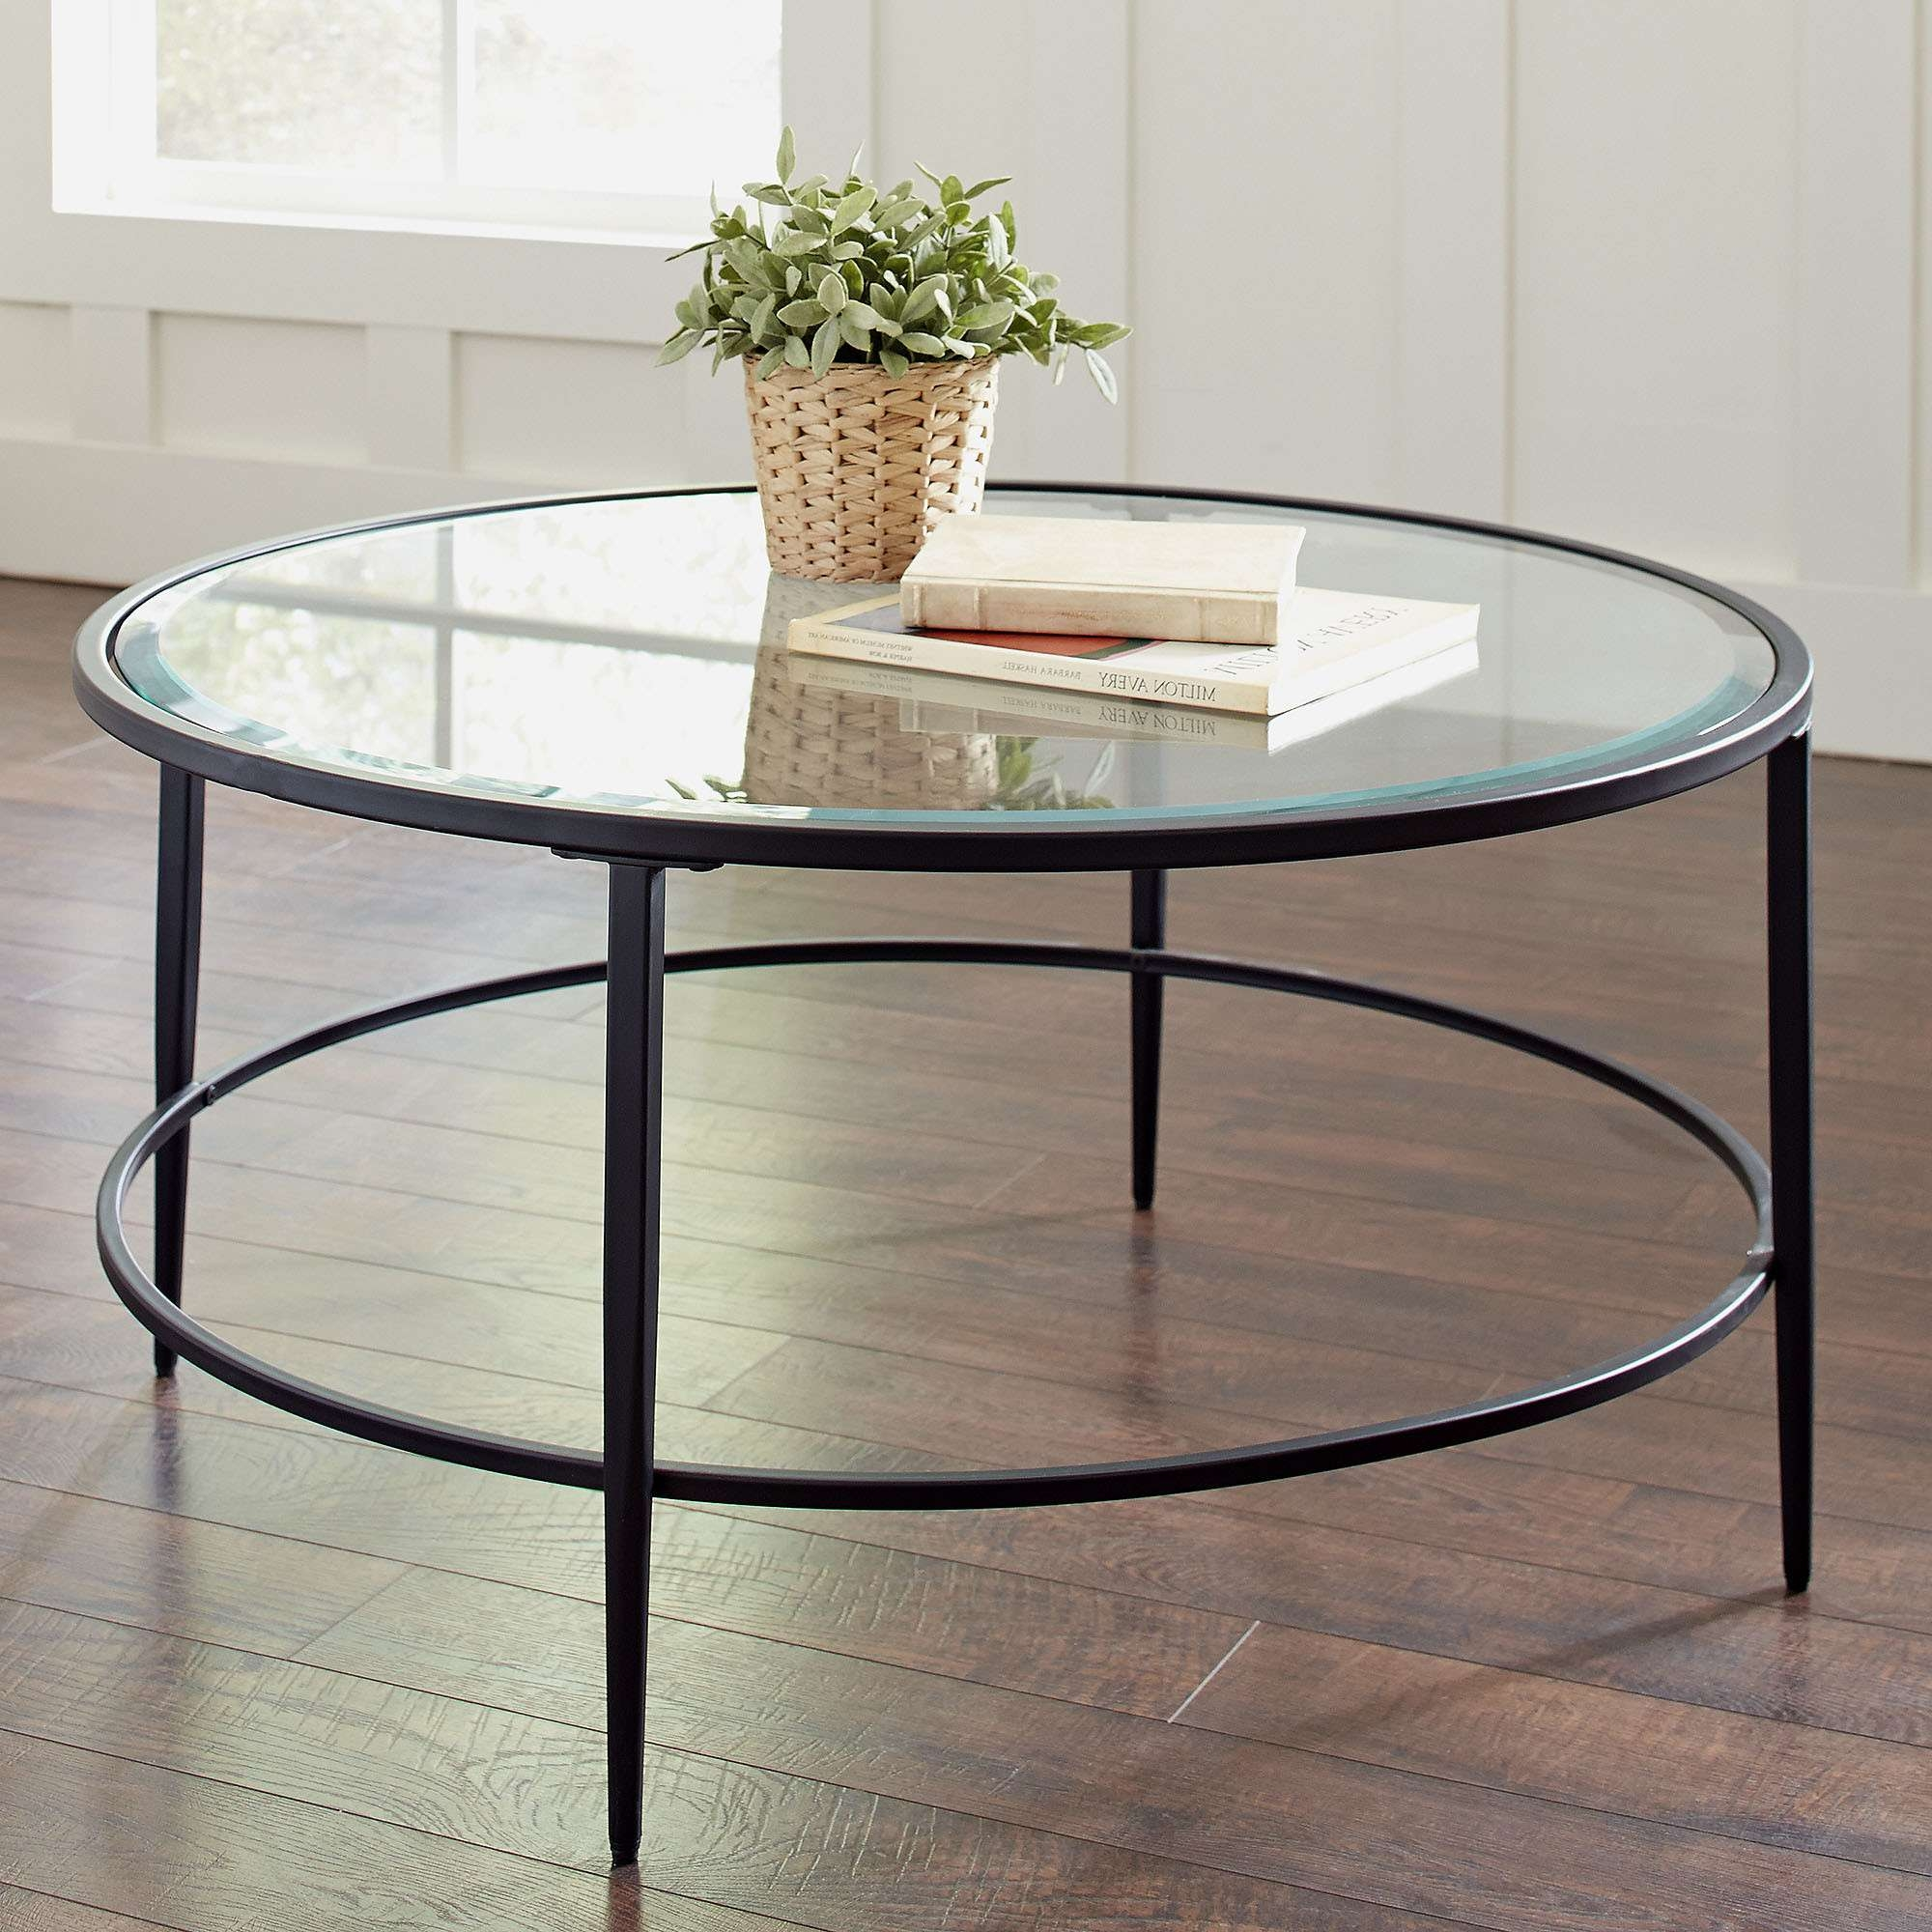 Most Recent Round Glass And Wood Coffee Tables Inside Coffee Tables : Stunning Design Of The Round Wood Coffee Table (View 11 of 20)